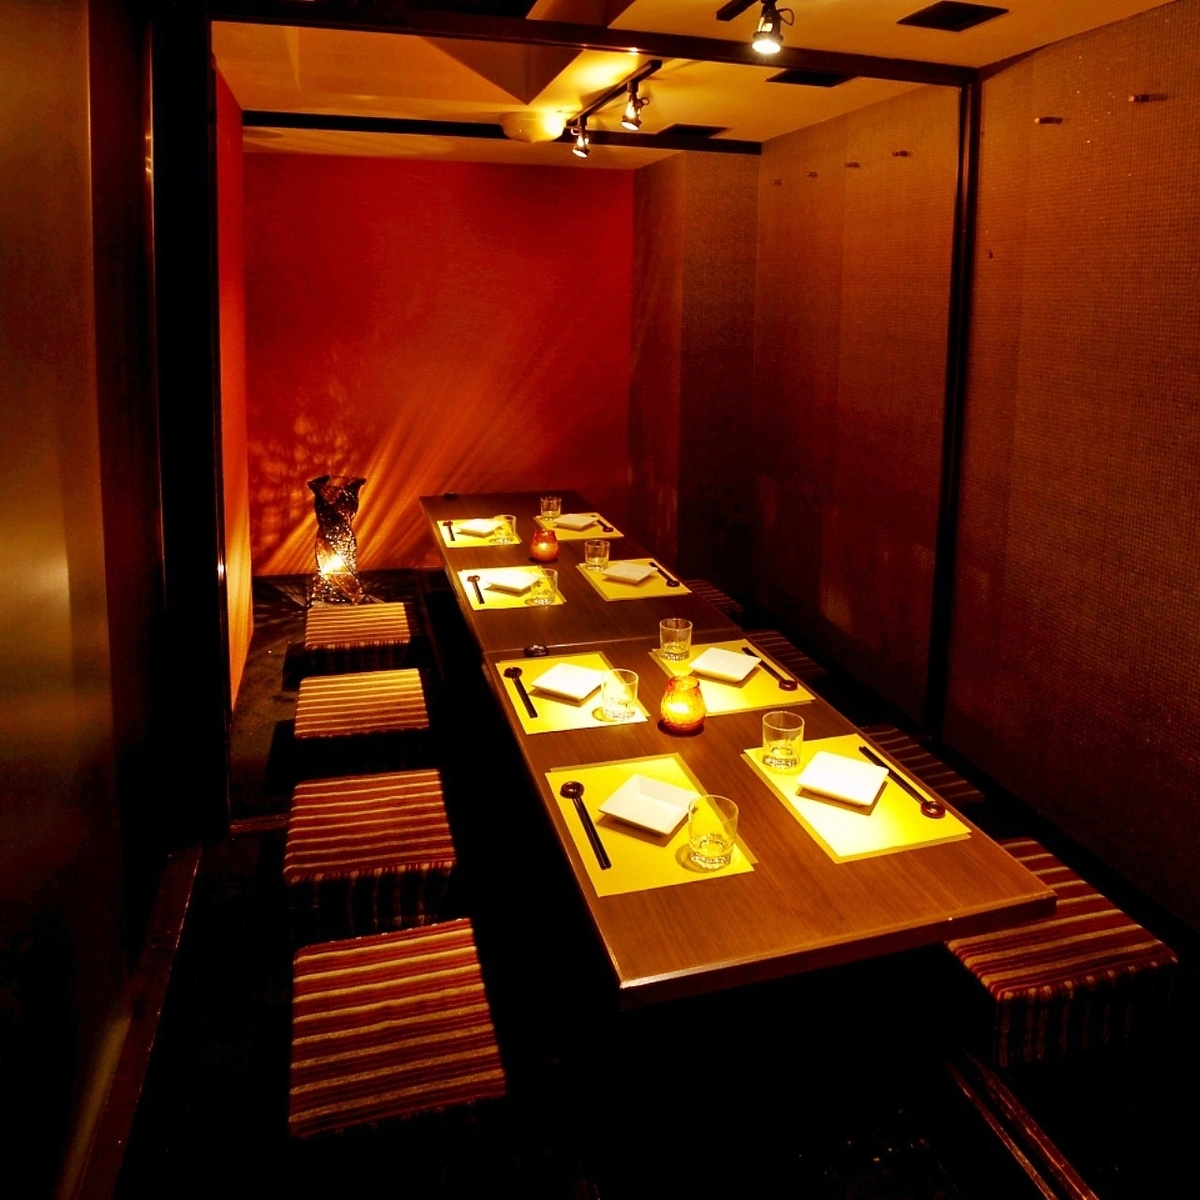 Omiki private room ♪ various scenes ♪ big success in any situation ♪ 彡 ☆ 彡 to the luxurious private room space ___ Umeda store Umeda Izakaya complete single room Higashi Umeda party party farewell birthday girls party 3 All-you-can-drink all-day]